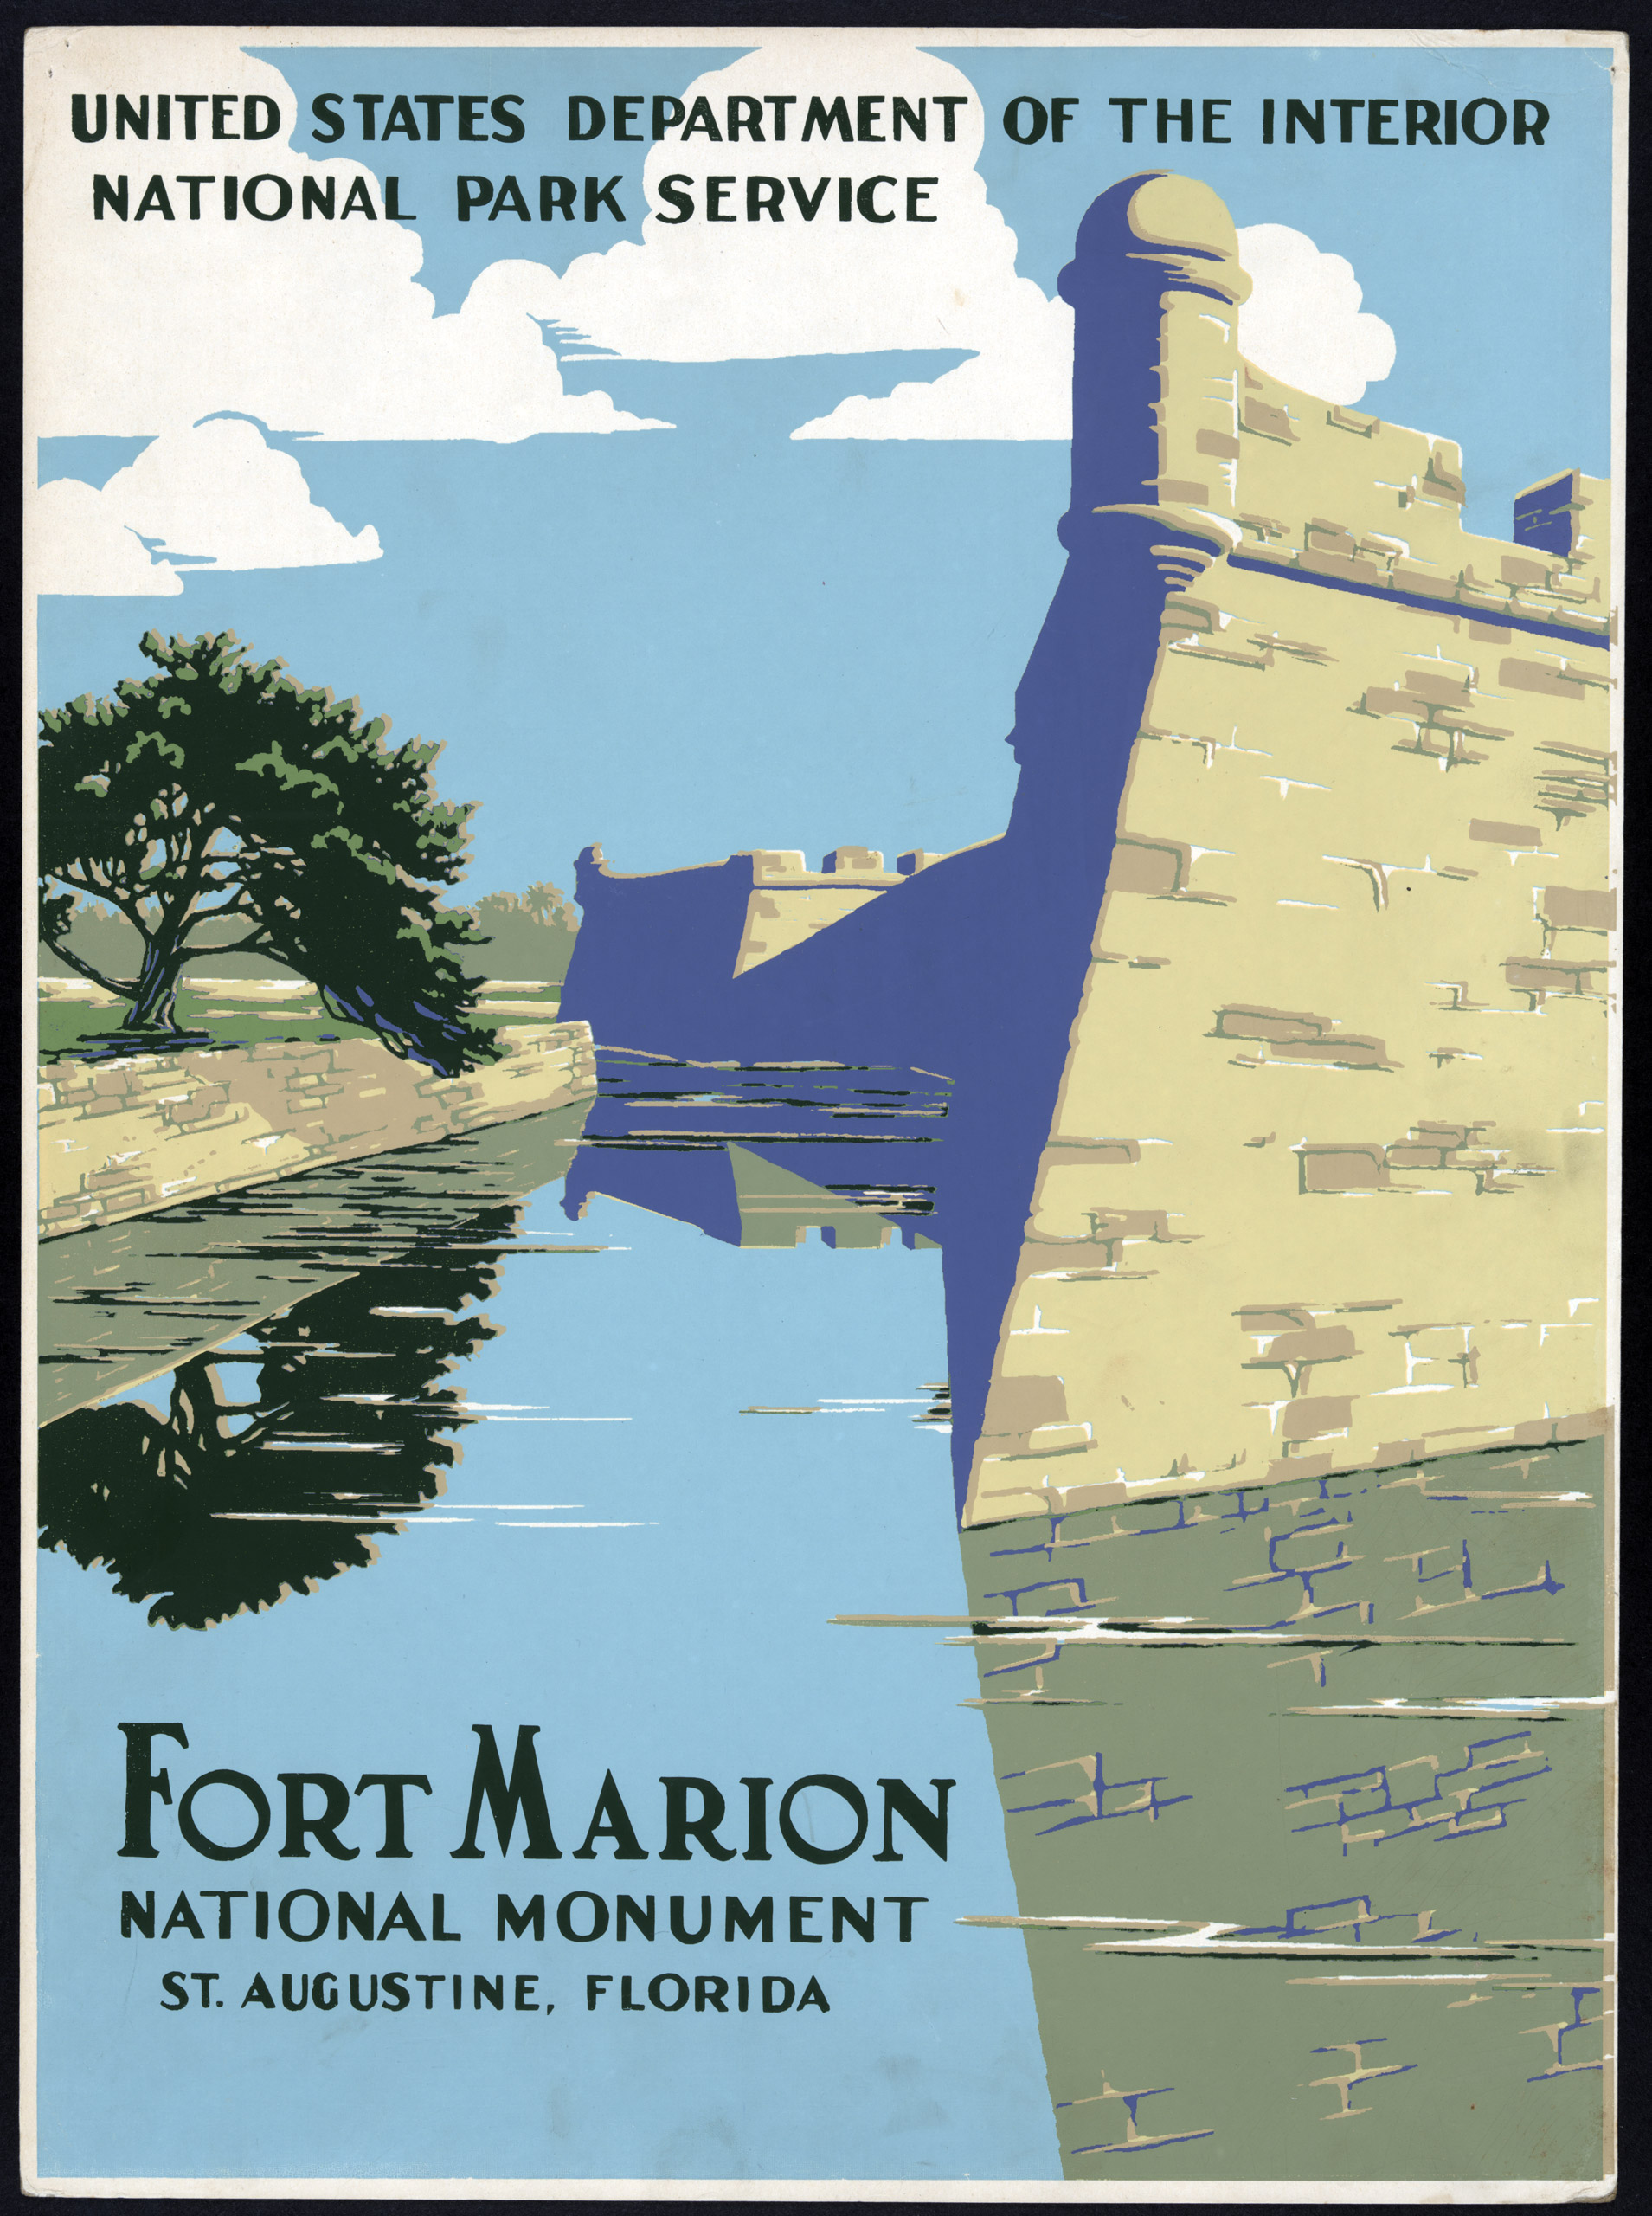 Fort Marion National Monument, St. Augustine, Florida, ca. 1938.